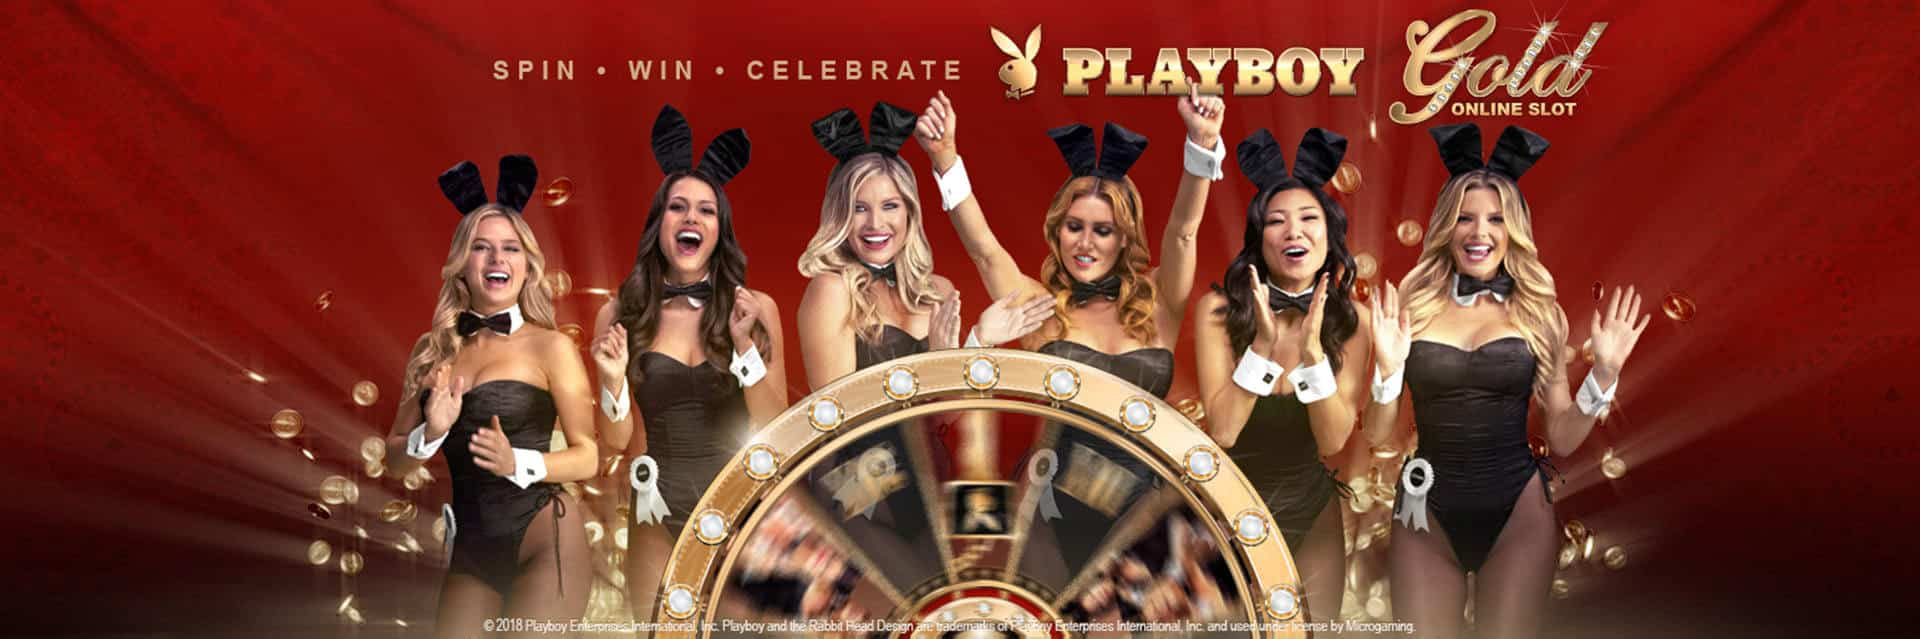 Playboy Gold Slot - Most Popular Online Slots Games